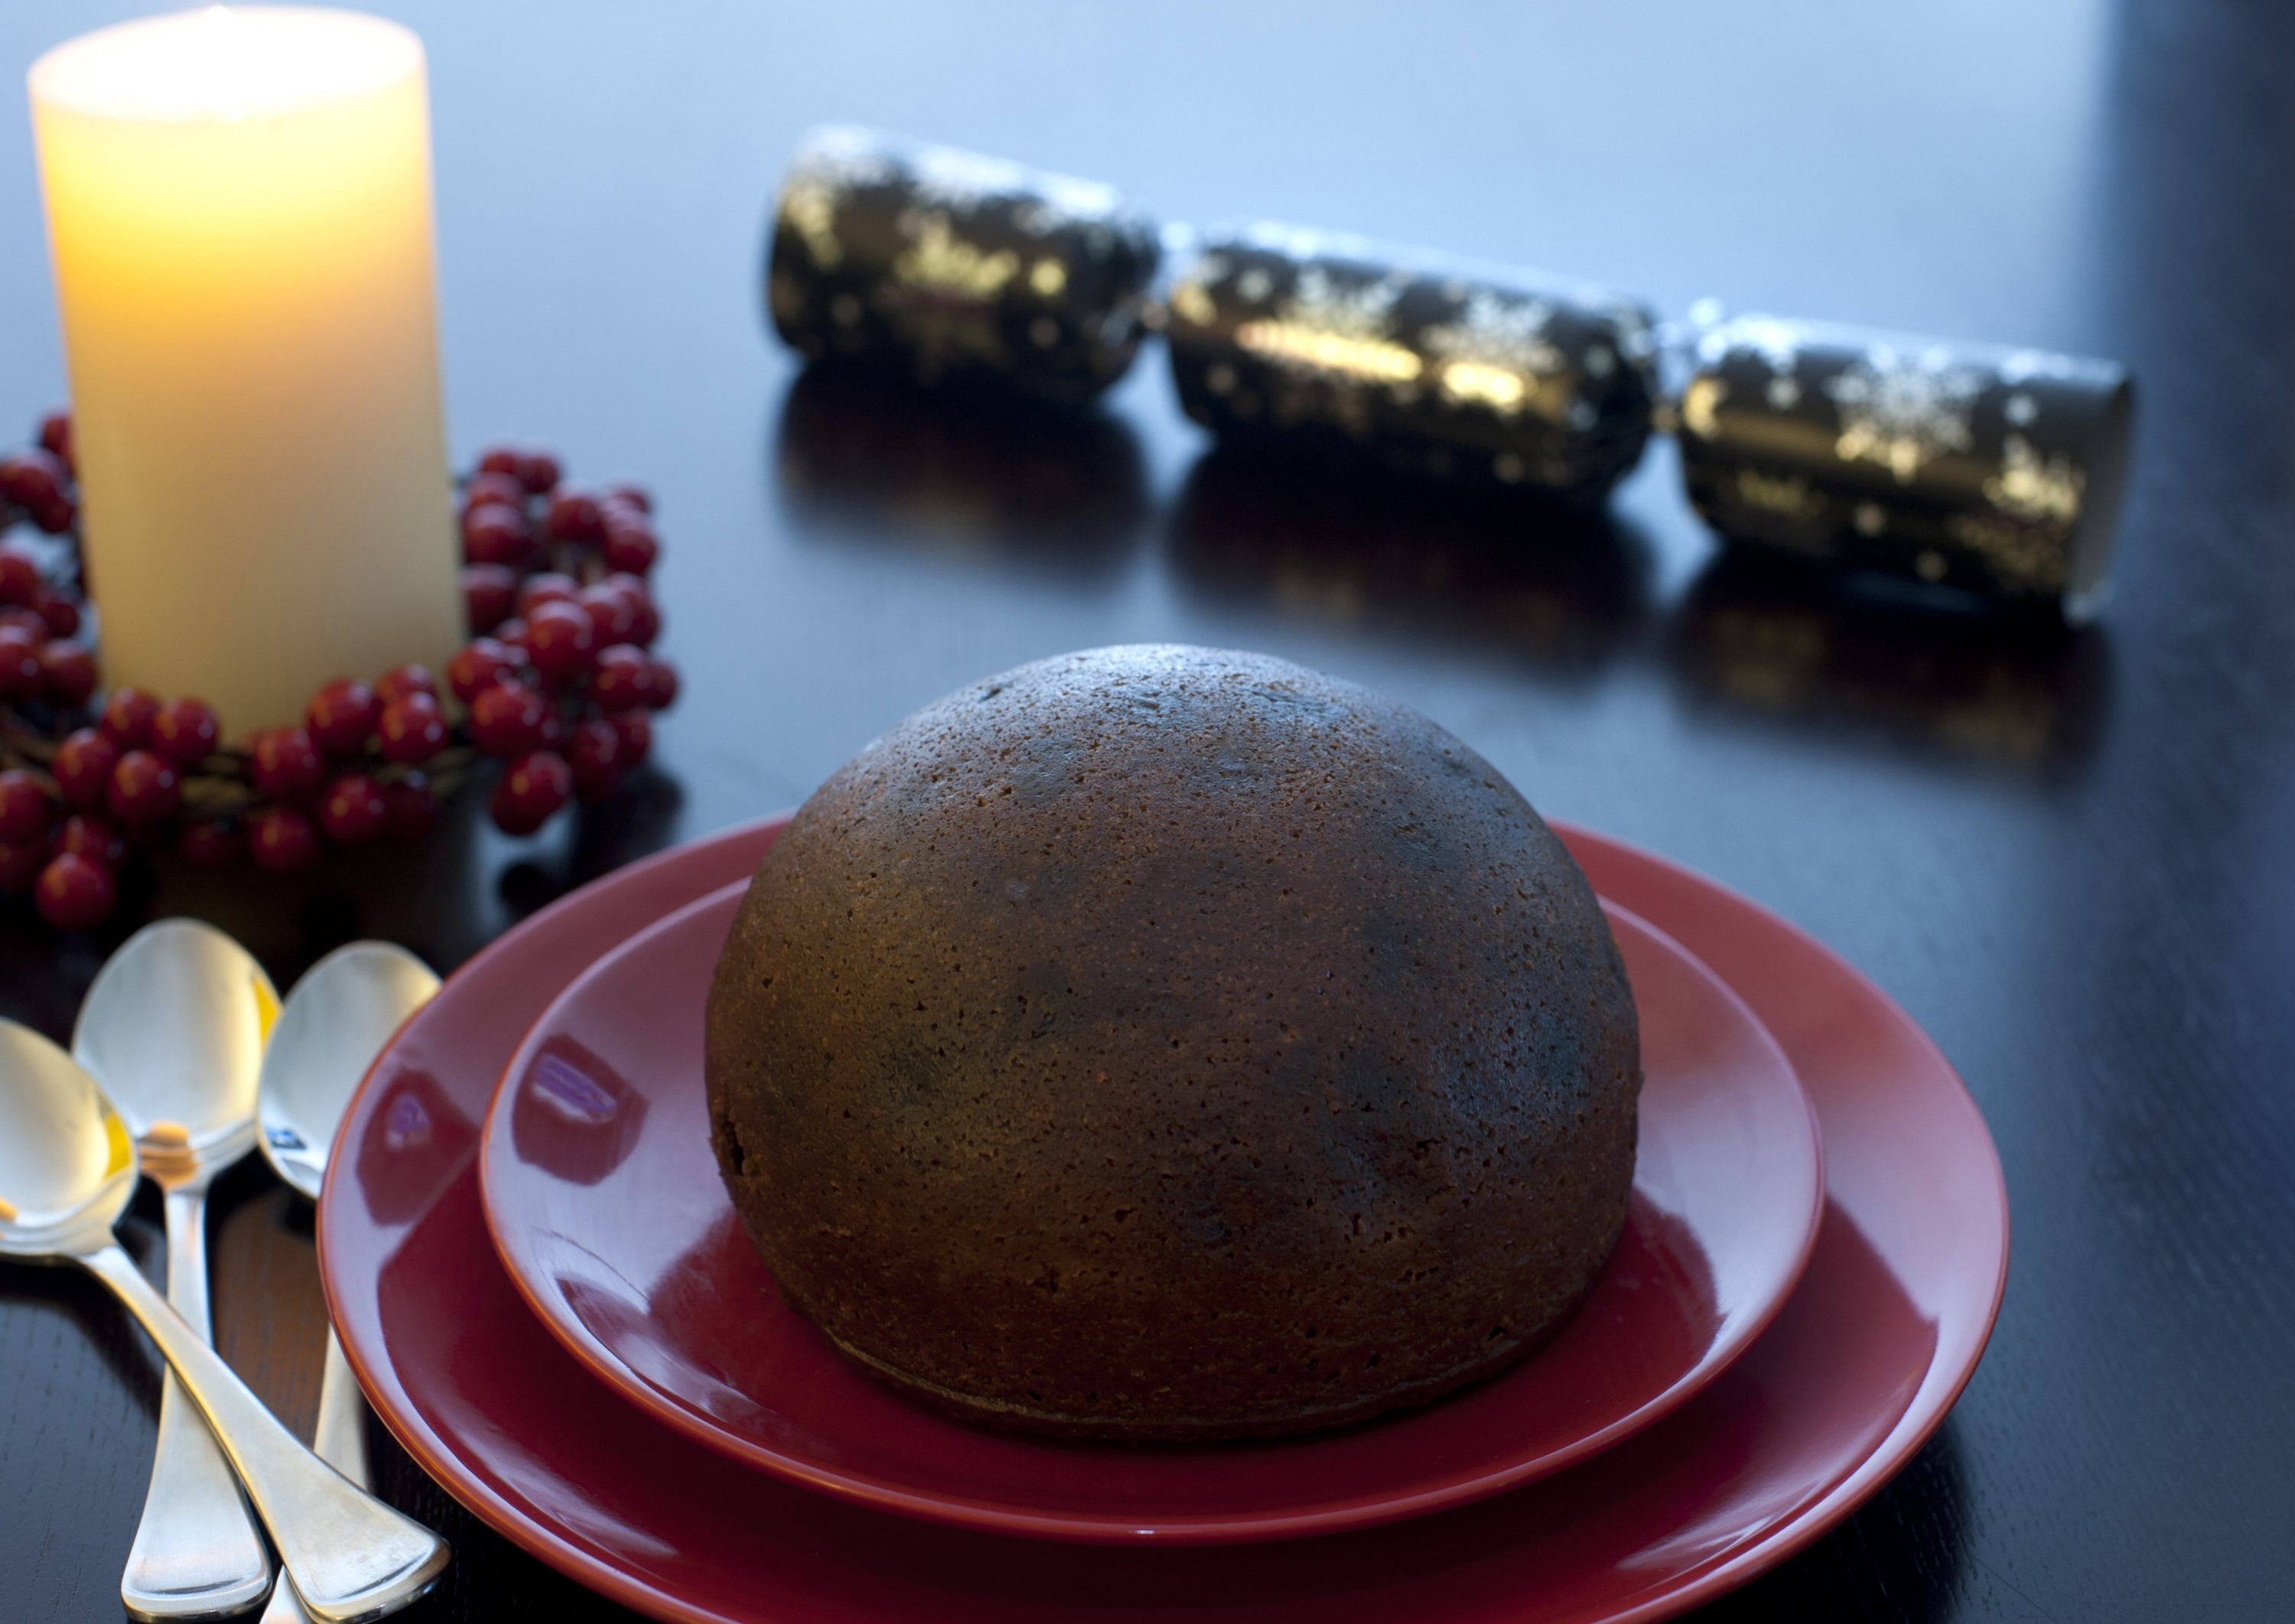 Large traditional steamed spiced Christmas fruit pudding served on festive red plates on the dinner table with a glowing candle and berry wreath to celebrate the Xmas season